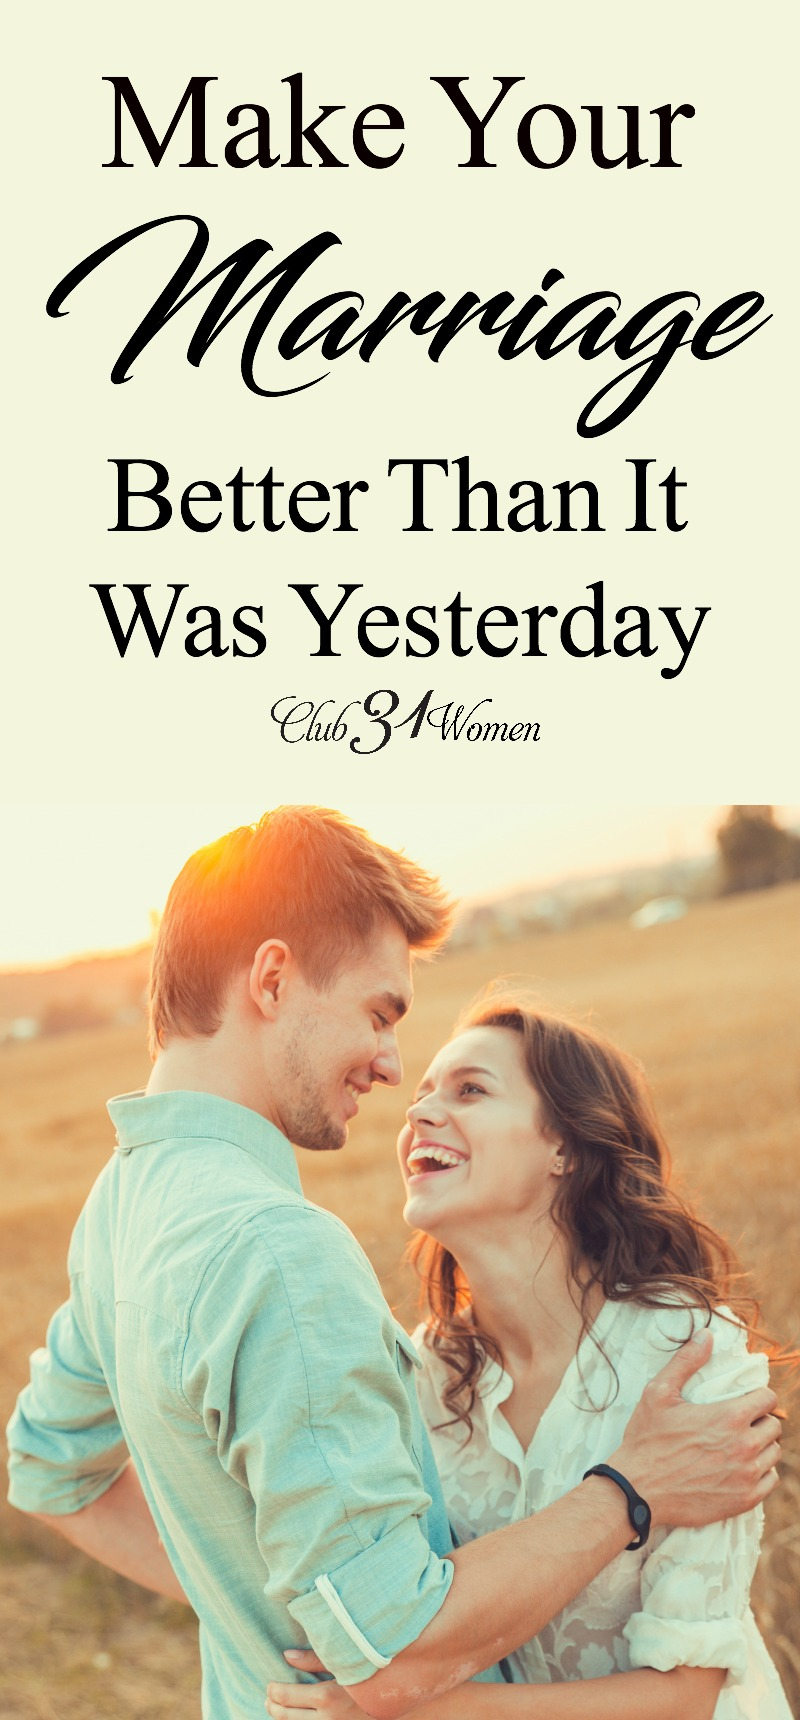 When's the last time you educated yourself on how to have a good marriage? Sometimes all you need is a fresh idea to make things better. via @Club31Women